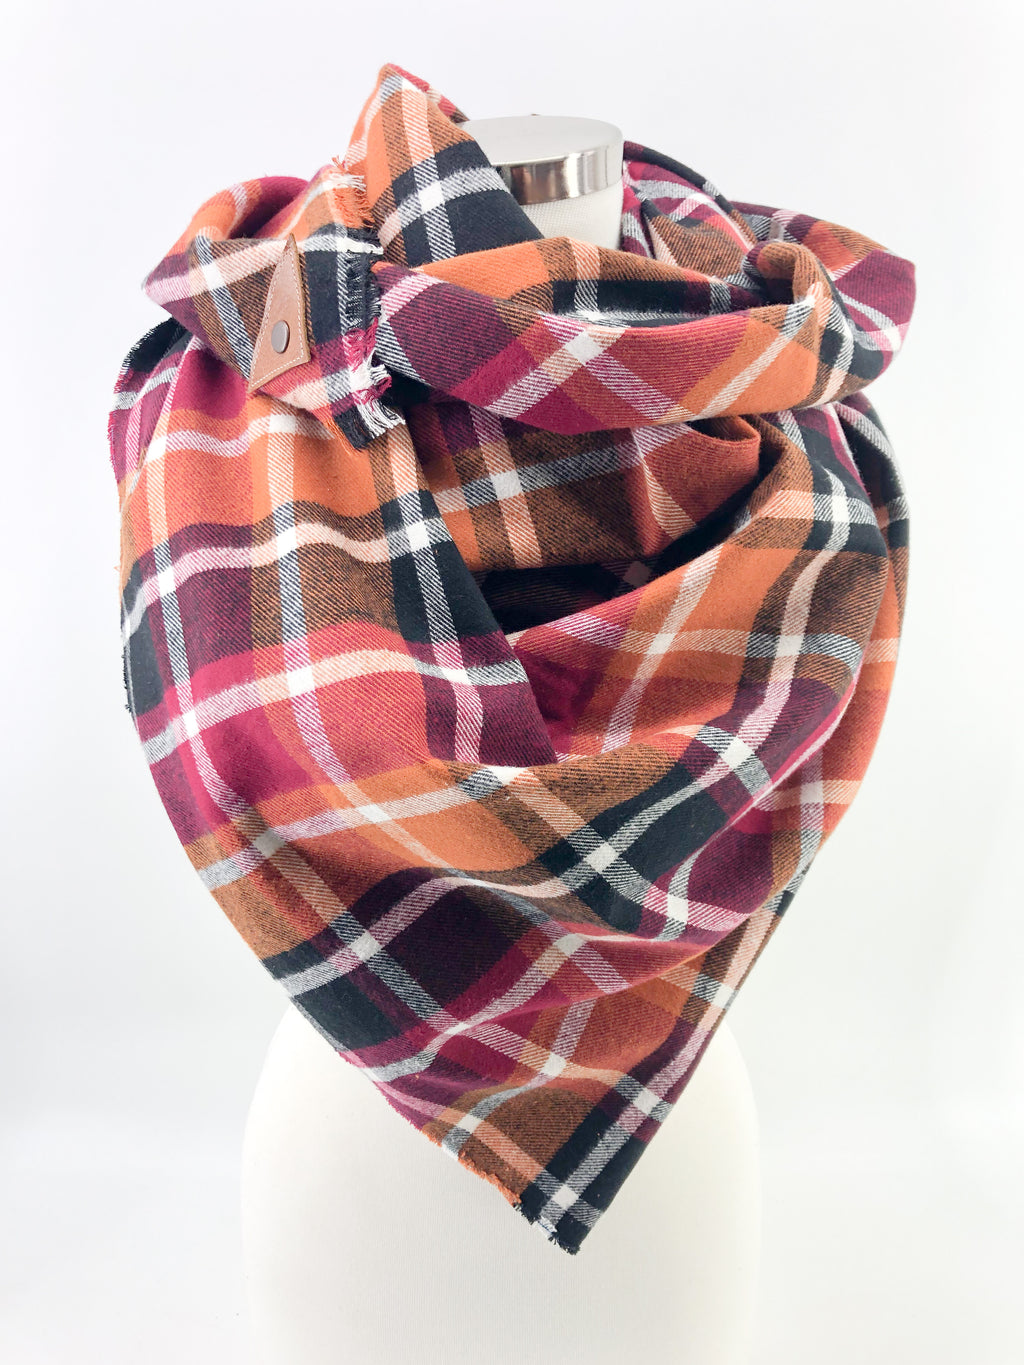 Harvest Plaid Blanket Scarf with Leather Detail